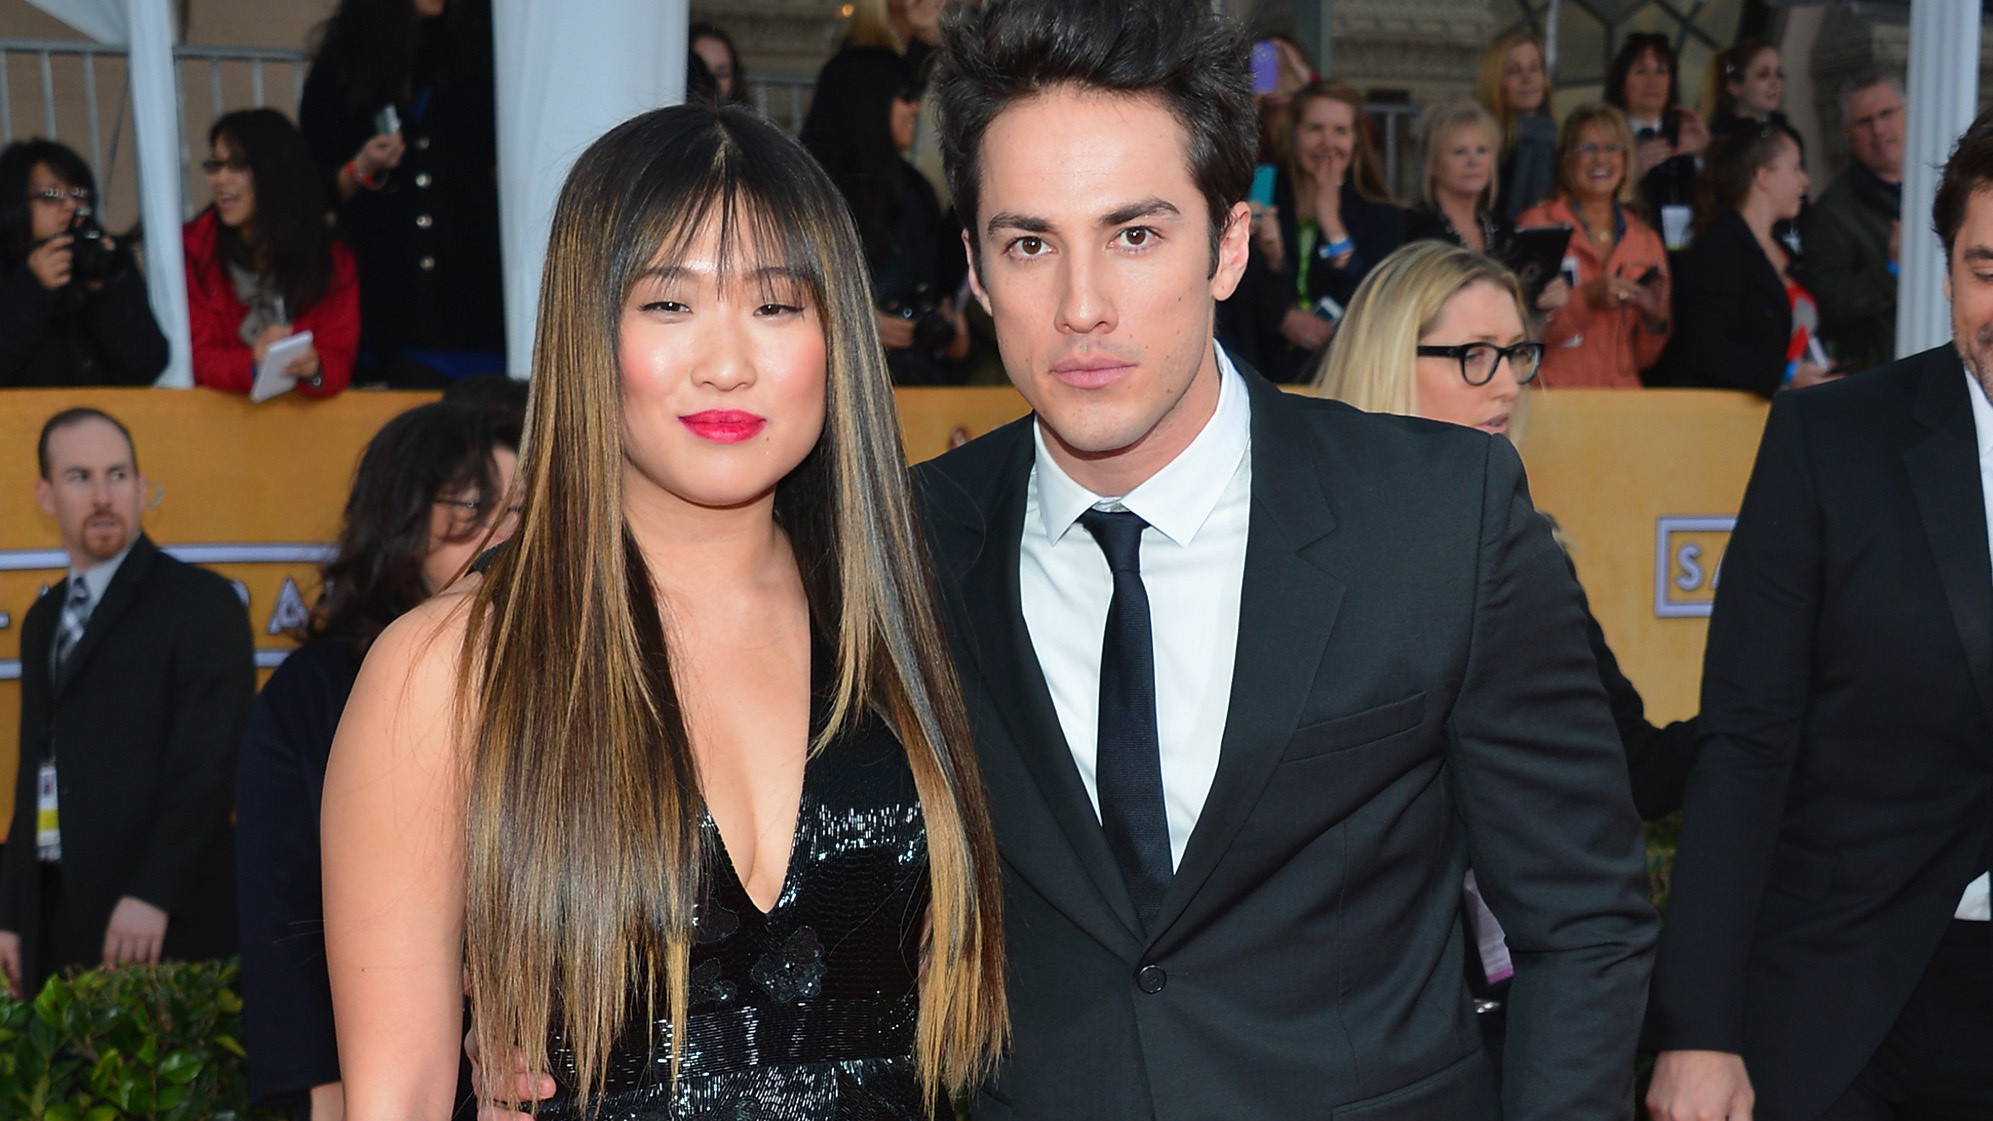 Michael Trevino Girlfriend Dating History & Exes